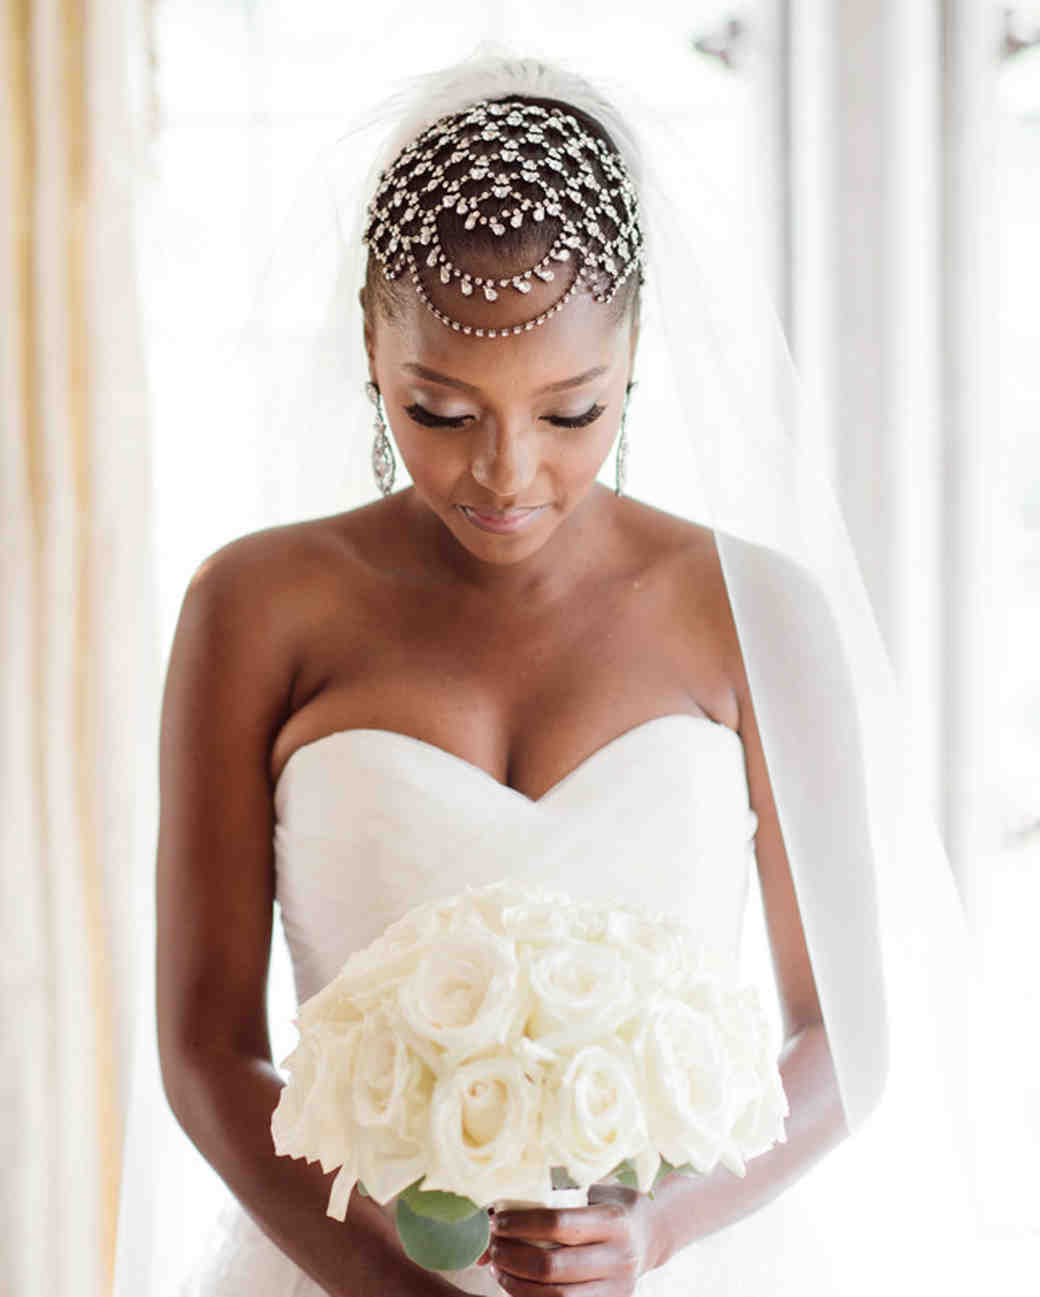 Short Hairstyle For Join Wedding: The Best Hairstyles For Every Wedding Dress Neckline